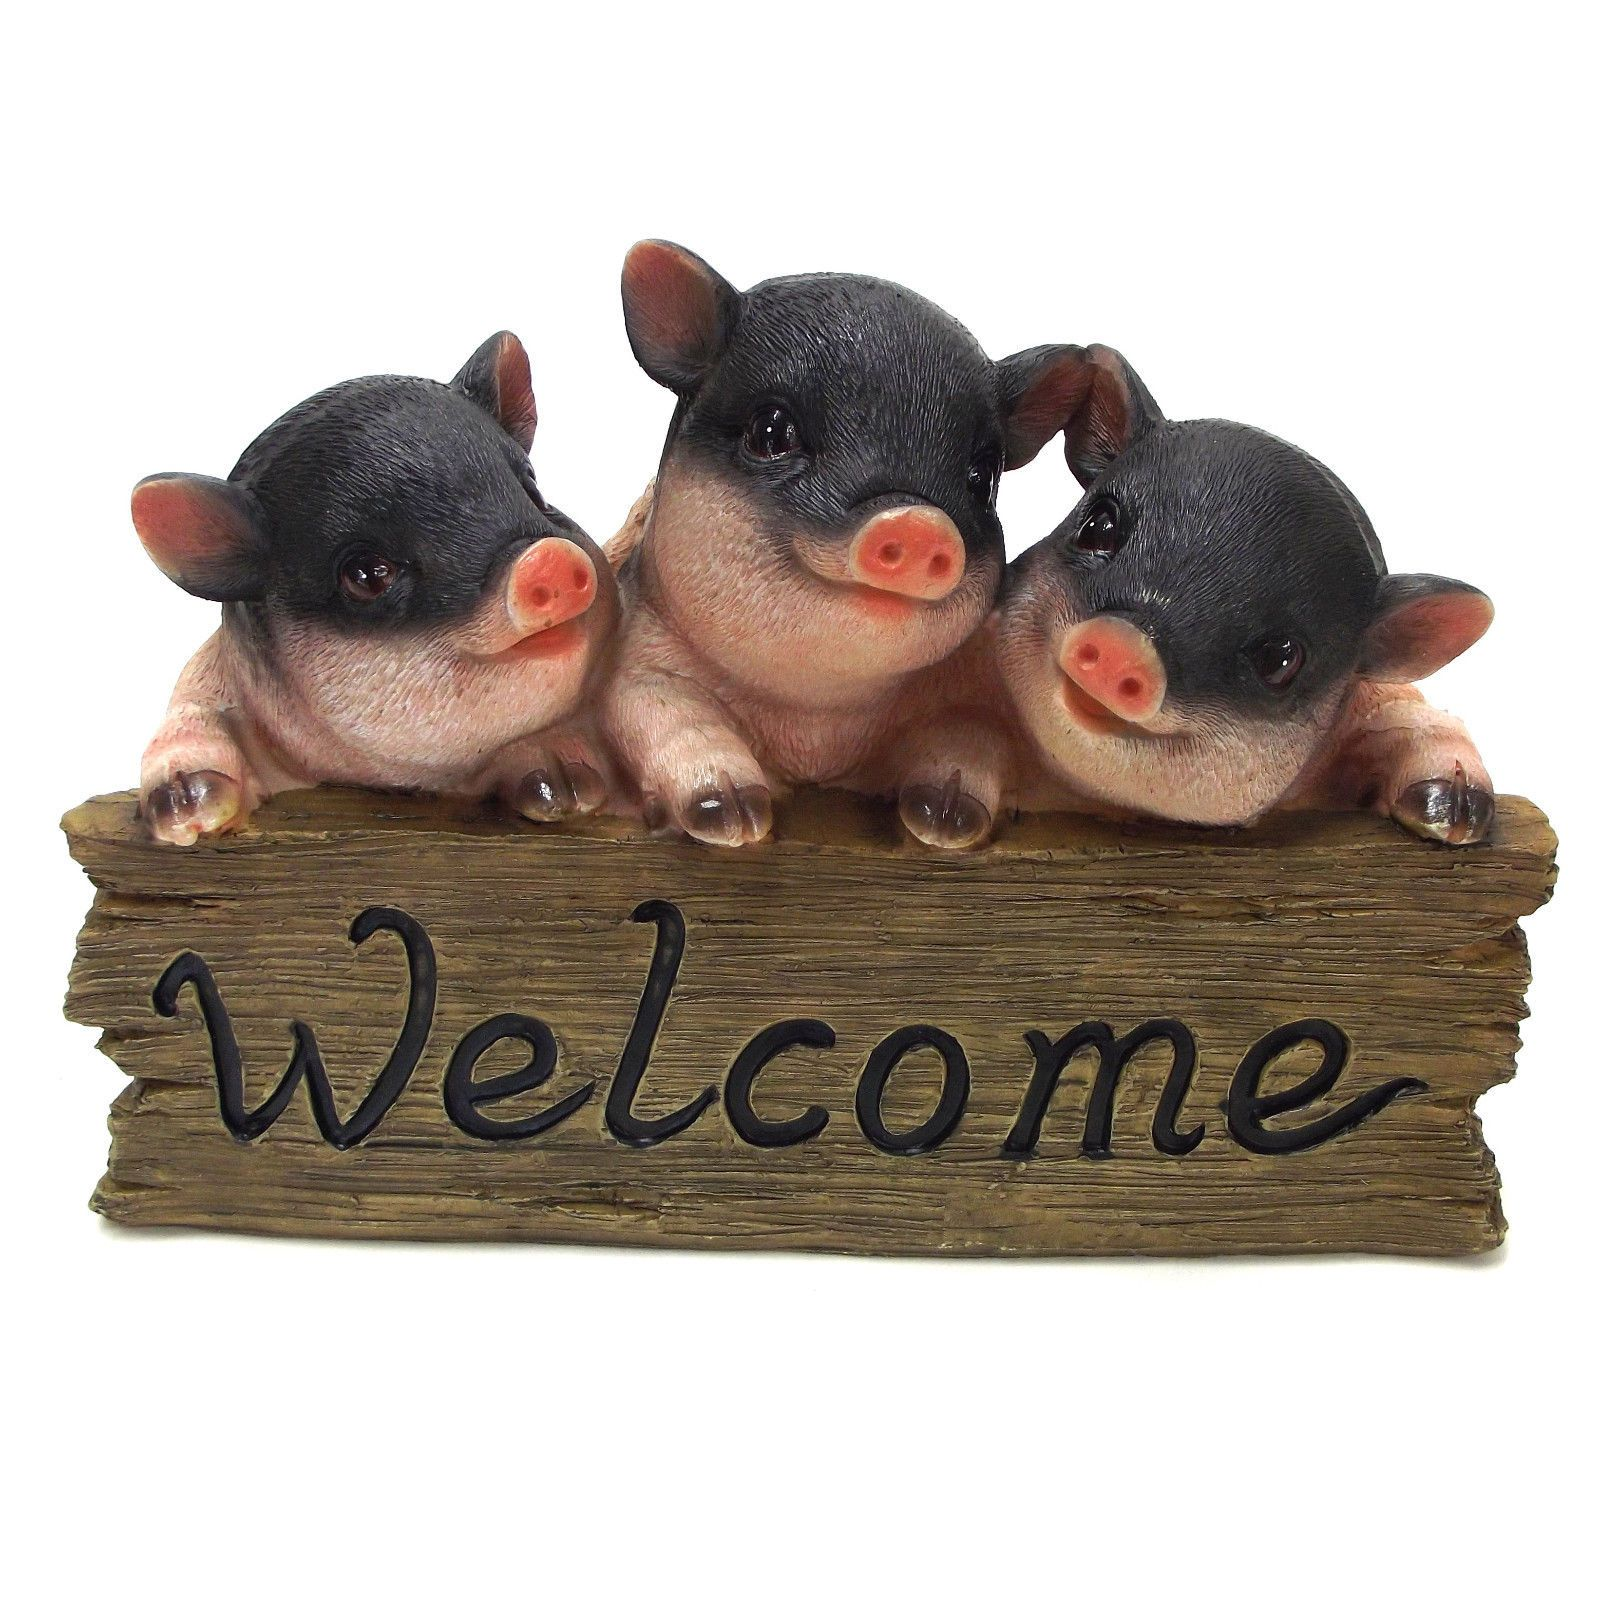 Pig Welcome Sign Ornament Piglet Statue Garden Sculpture 25cm Black 2027 |  EBay